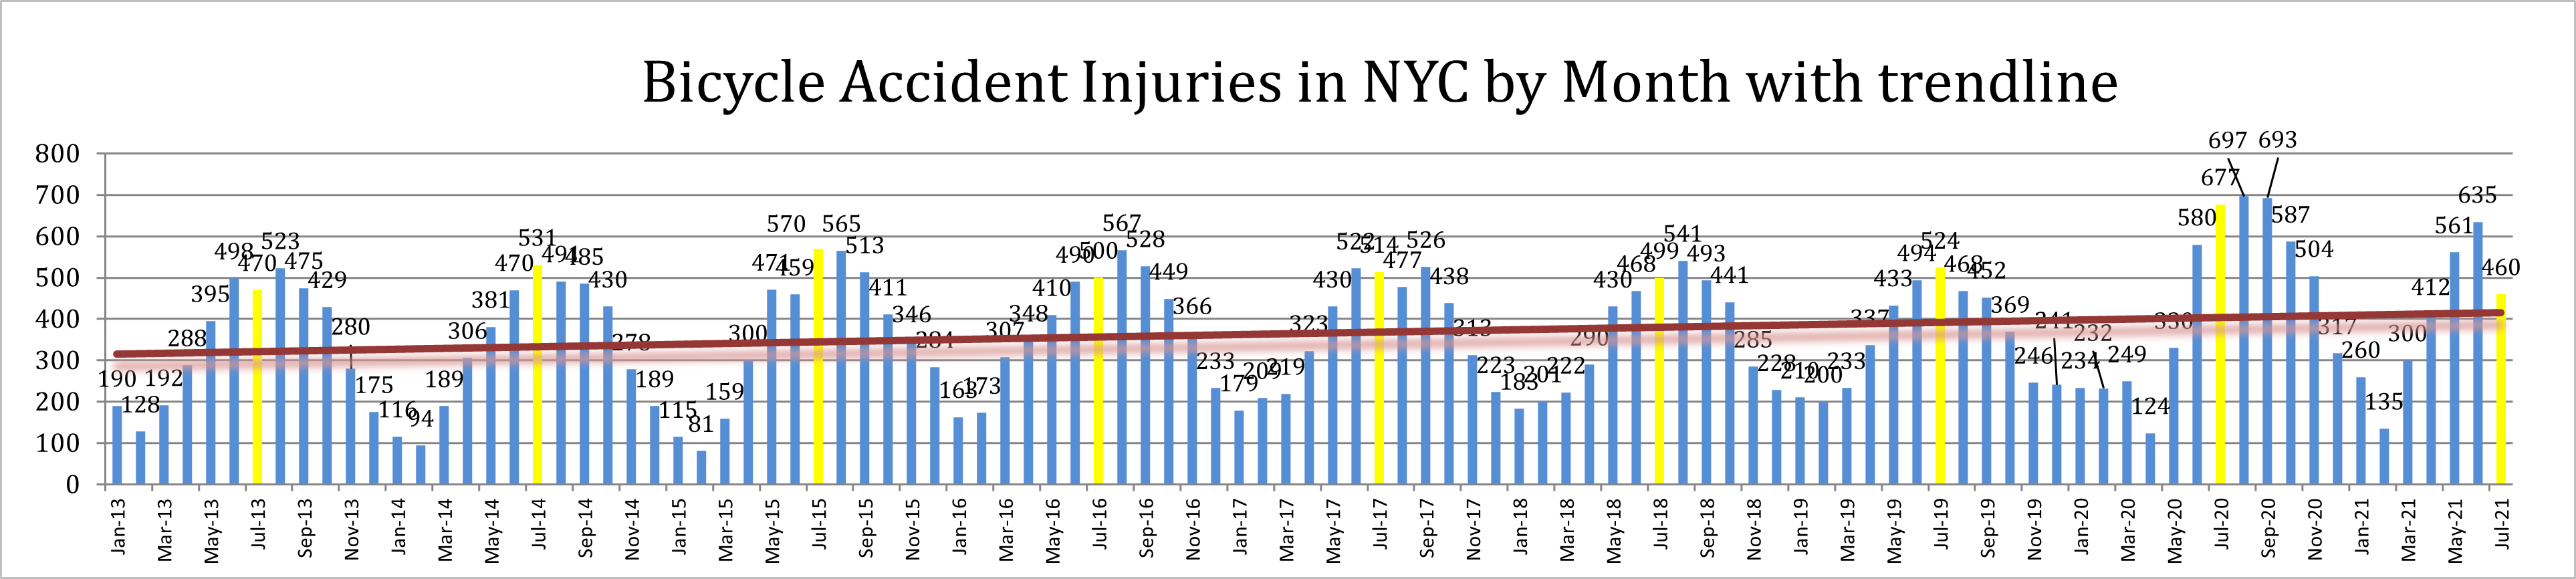 Bike accident injuries NYC July 21